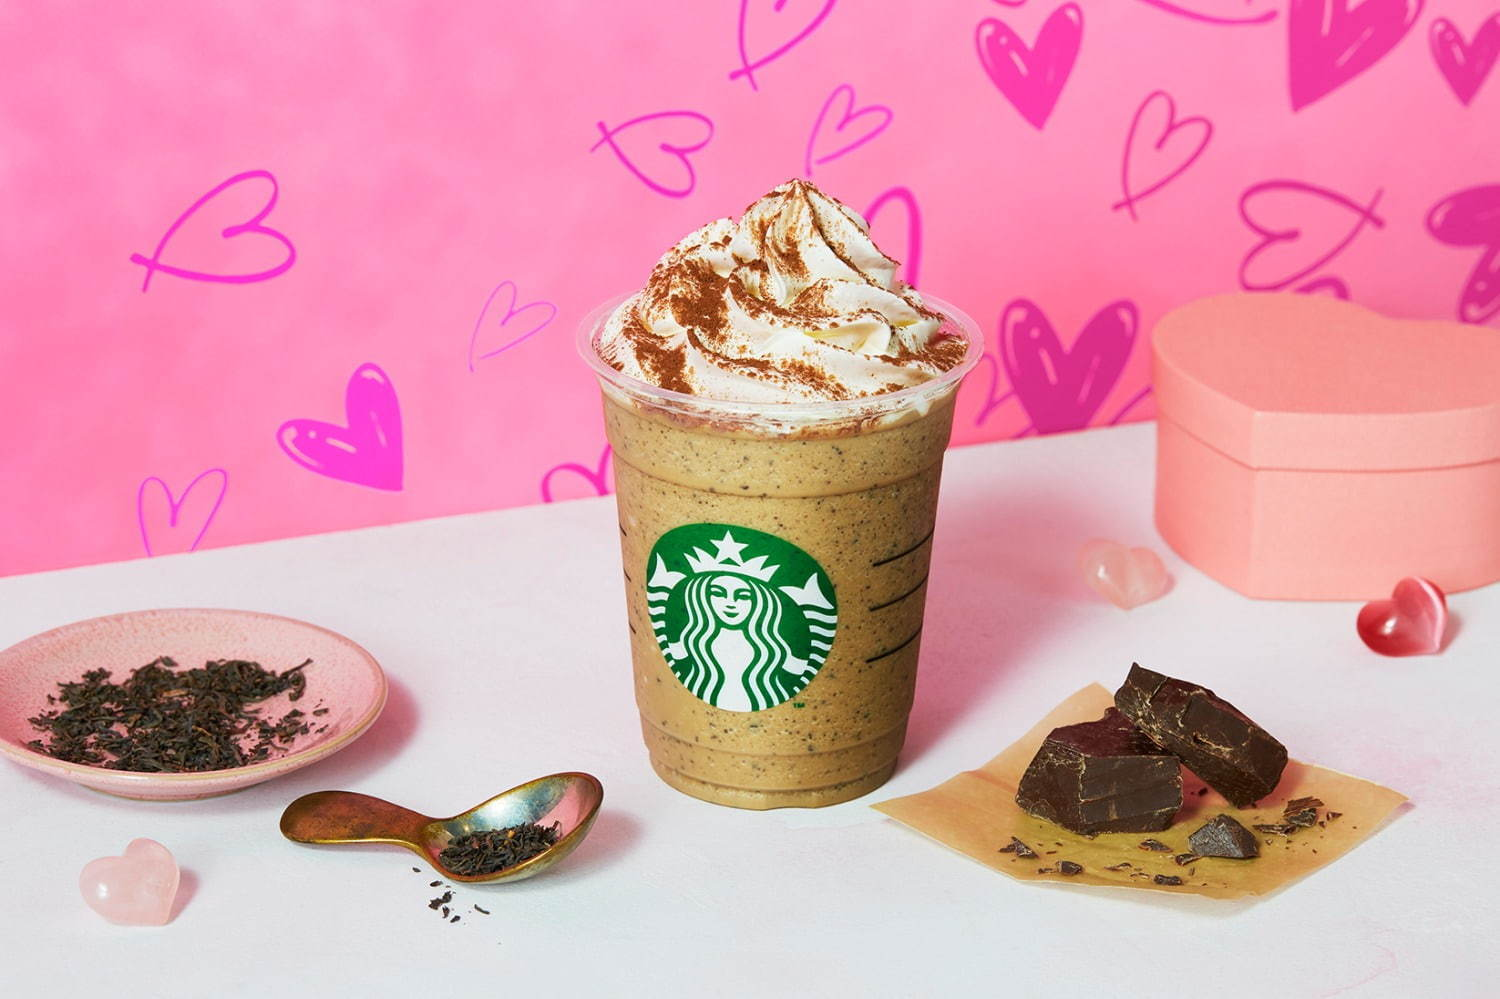 Chocolate with Milk Tea Frappuccino